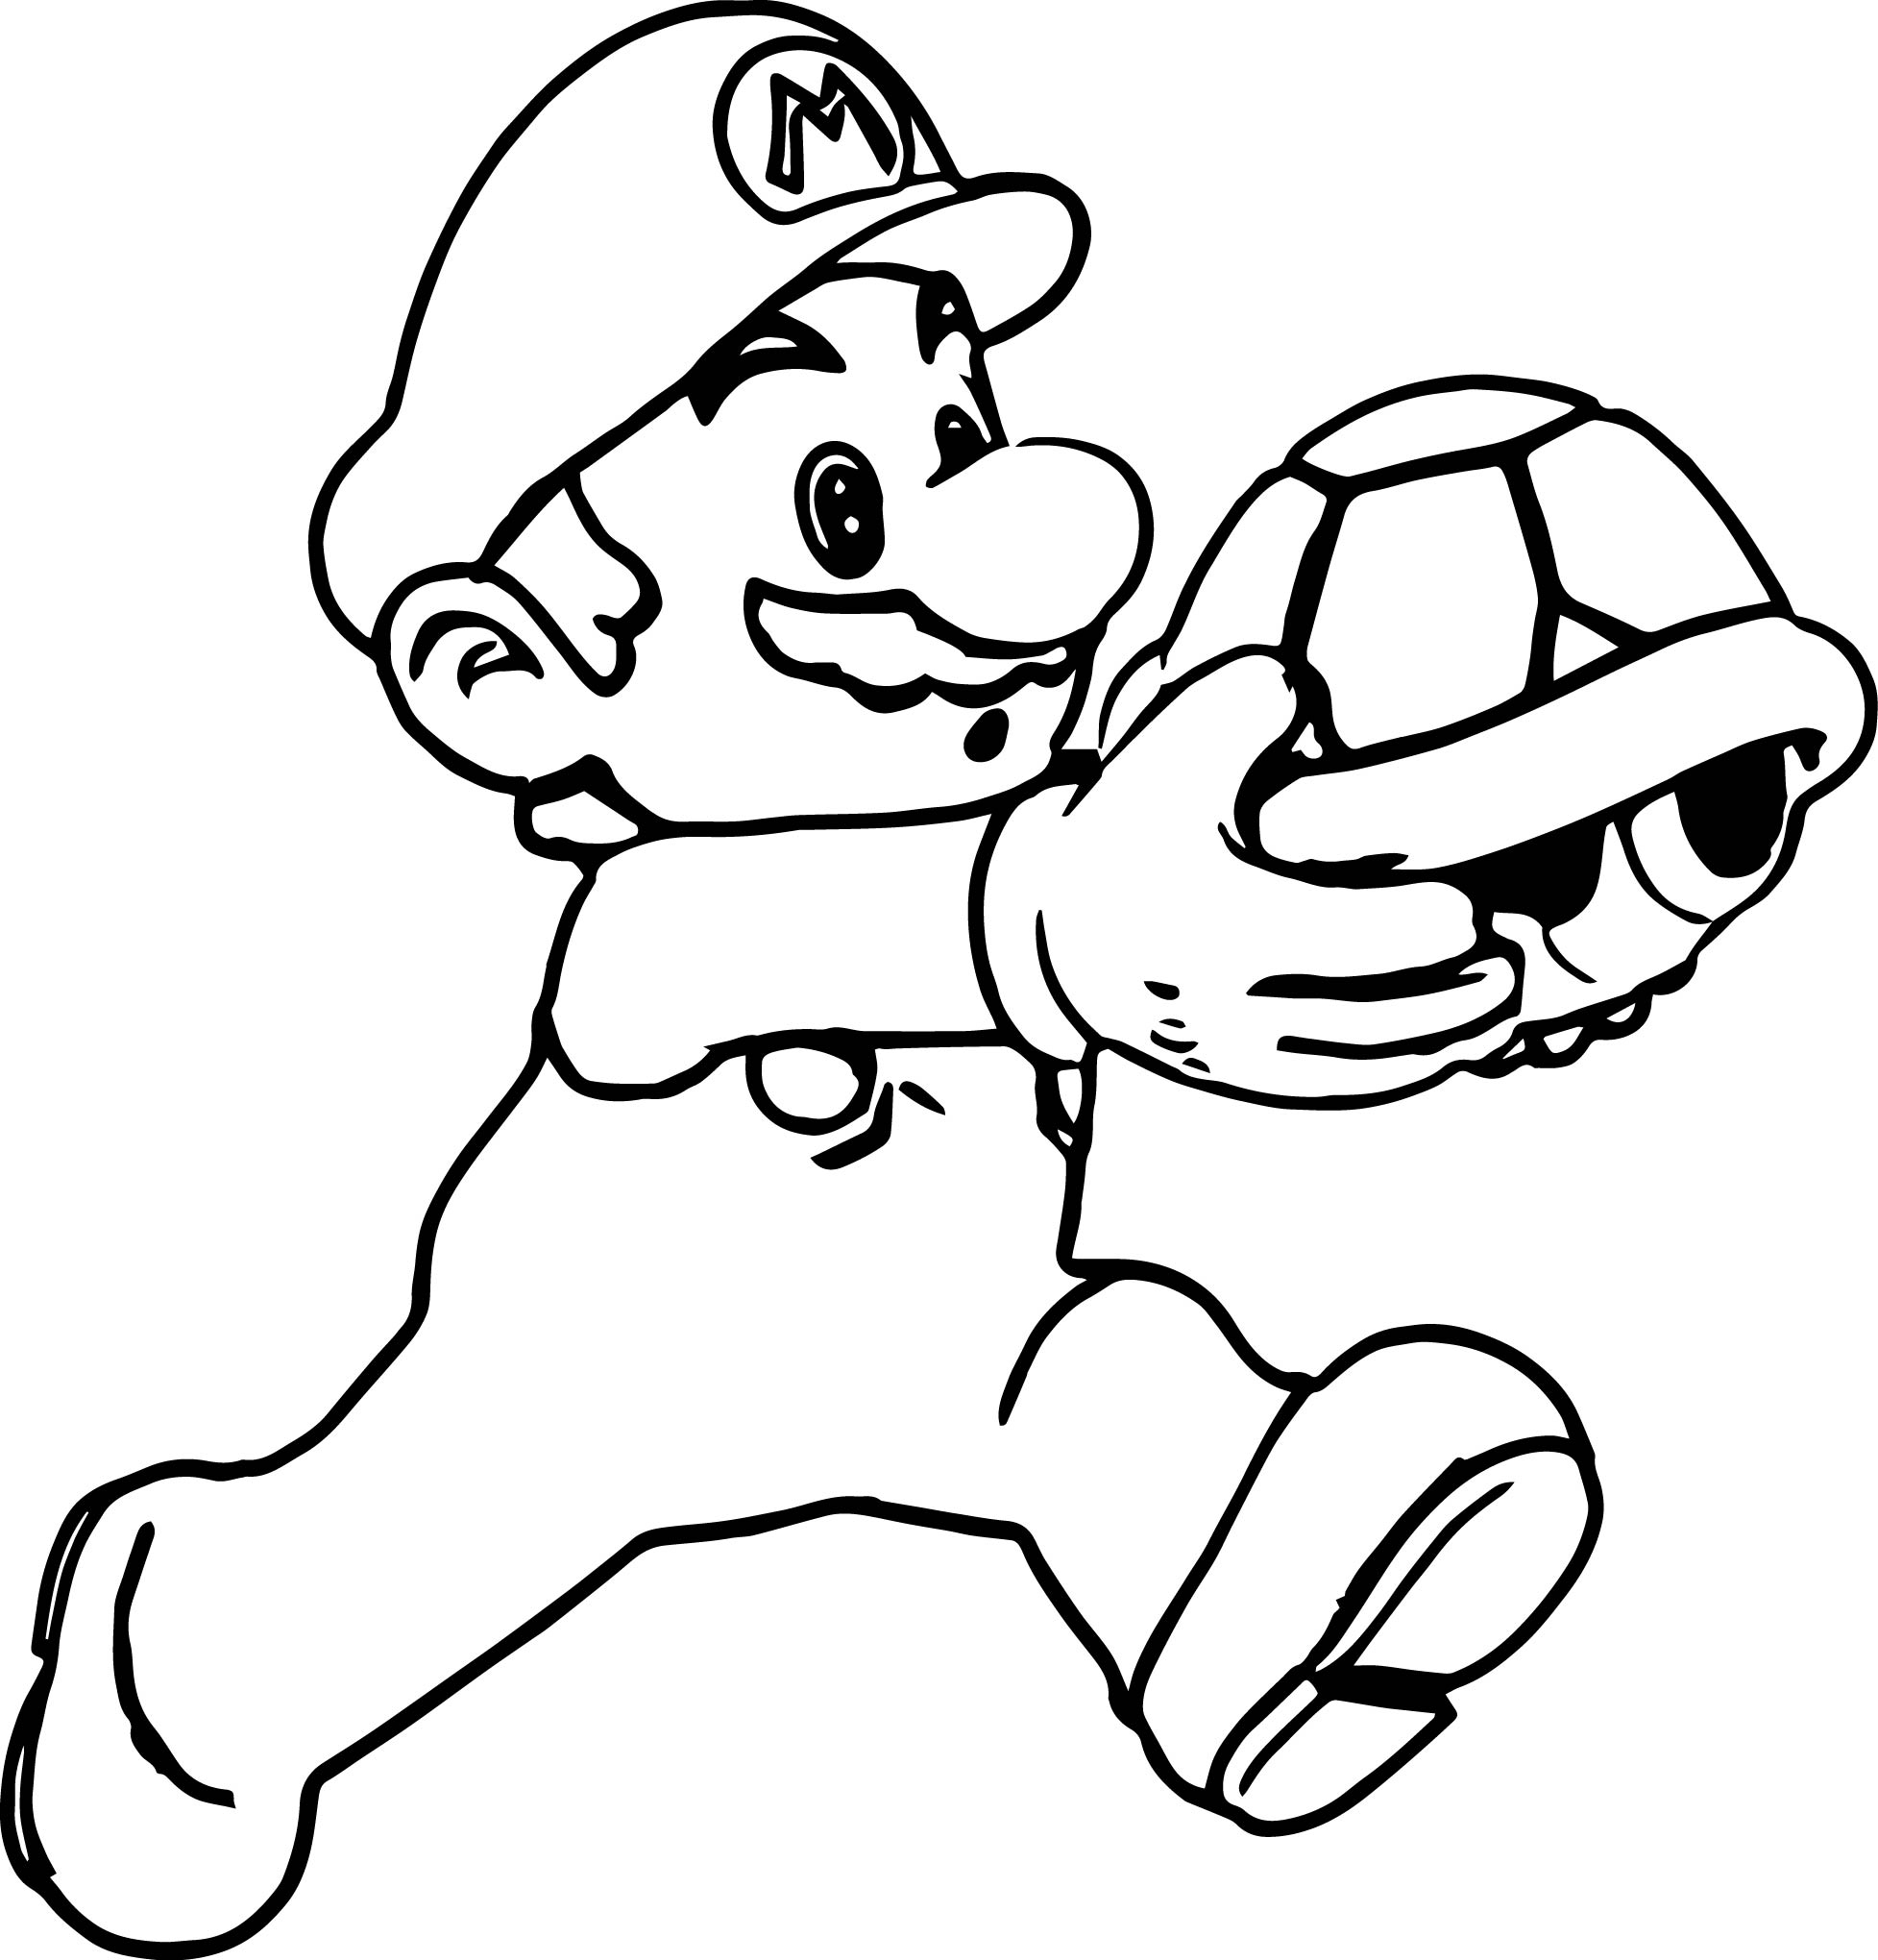 Super Mario Running And Holding Turtle Coloring Page